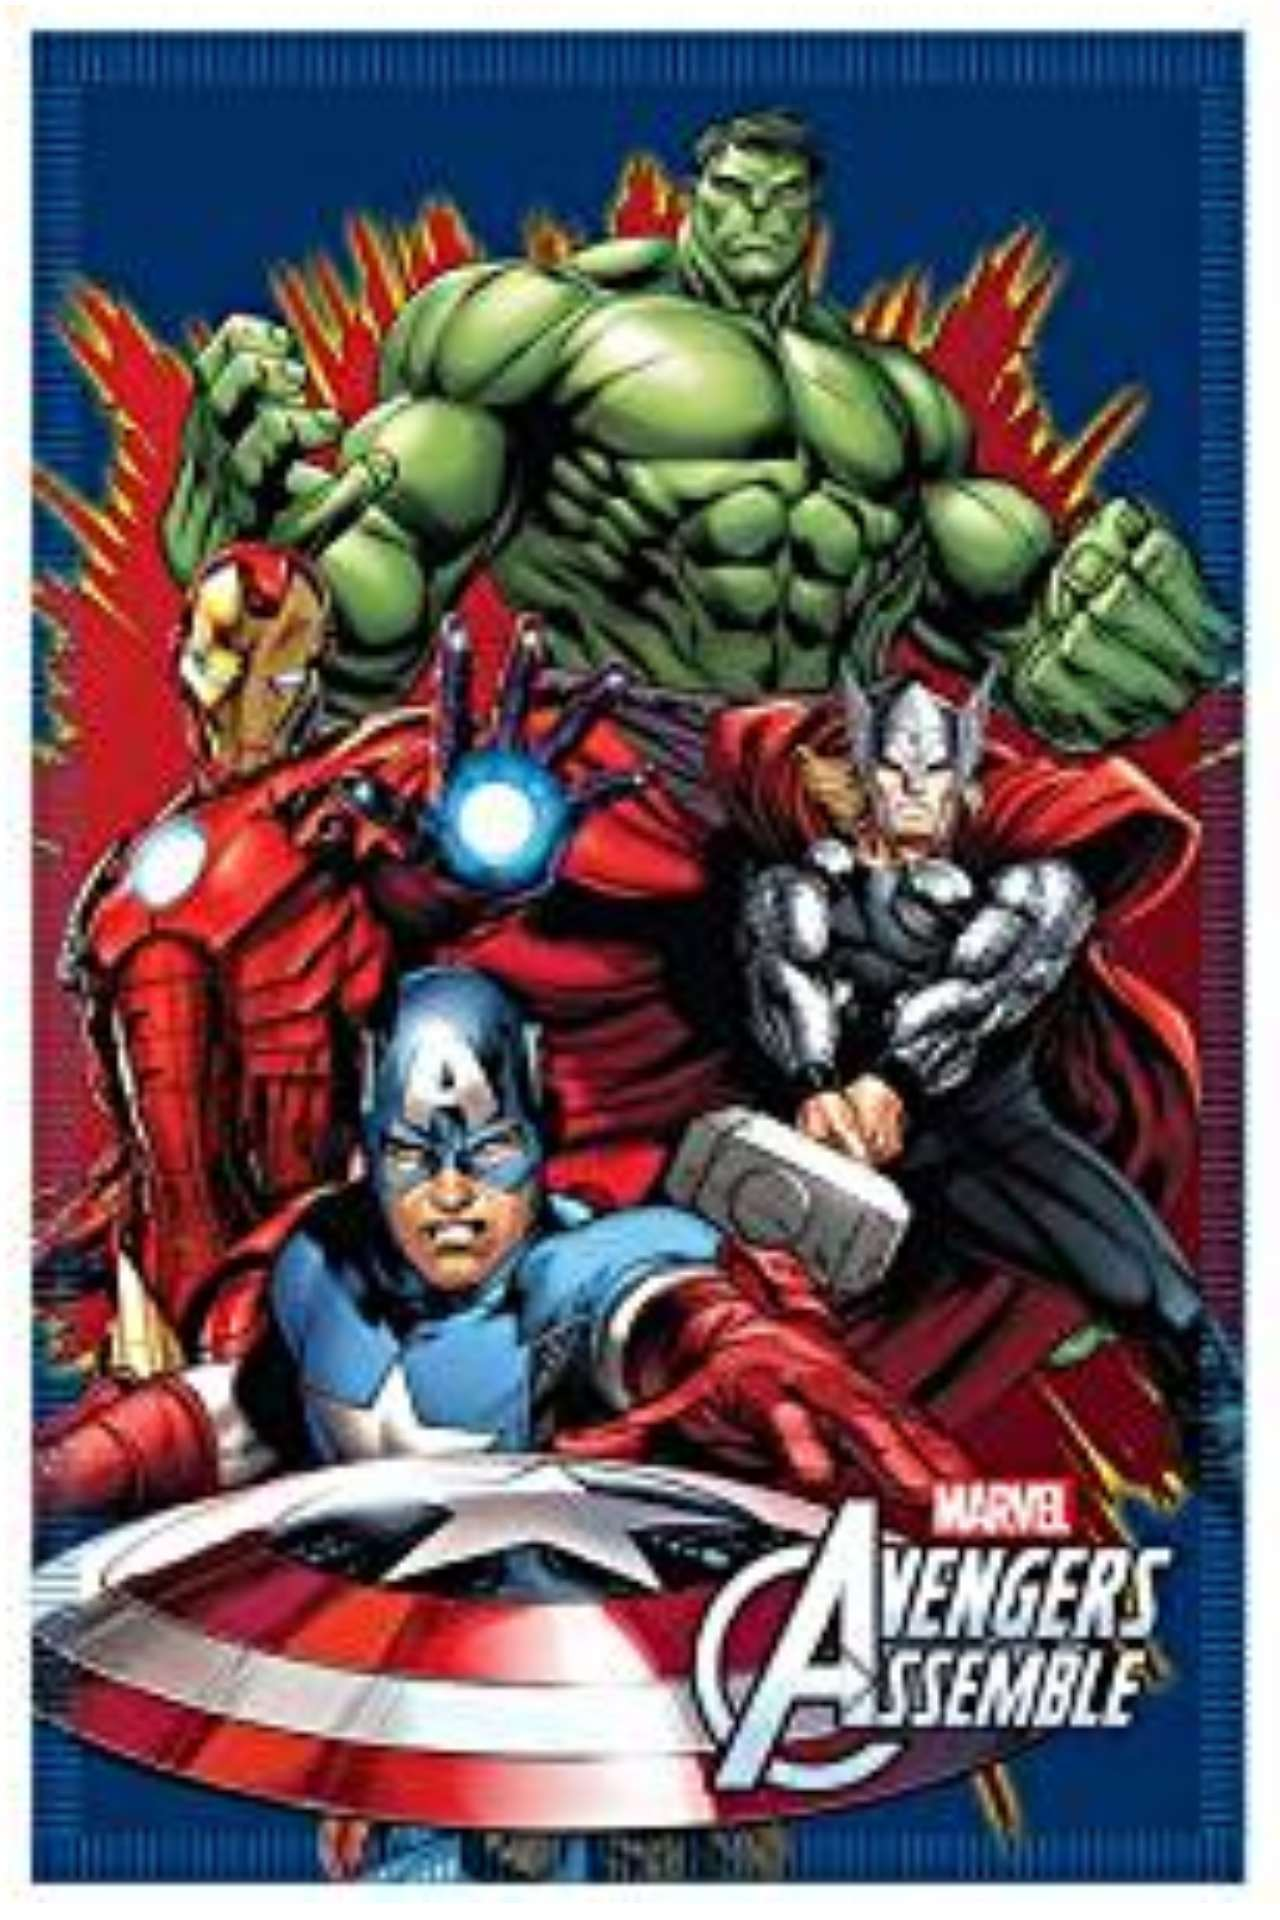 Marvel avengers soft fleece blanket Avengers assemble